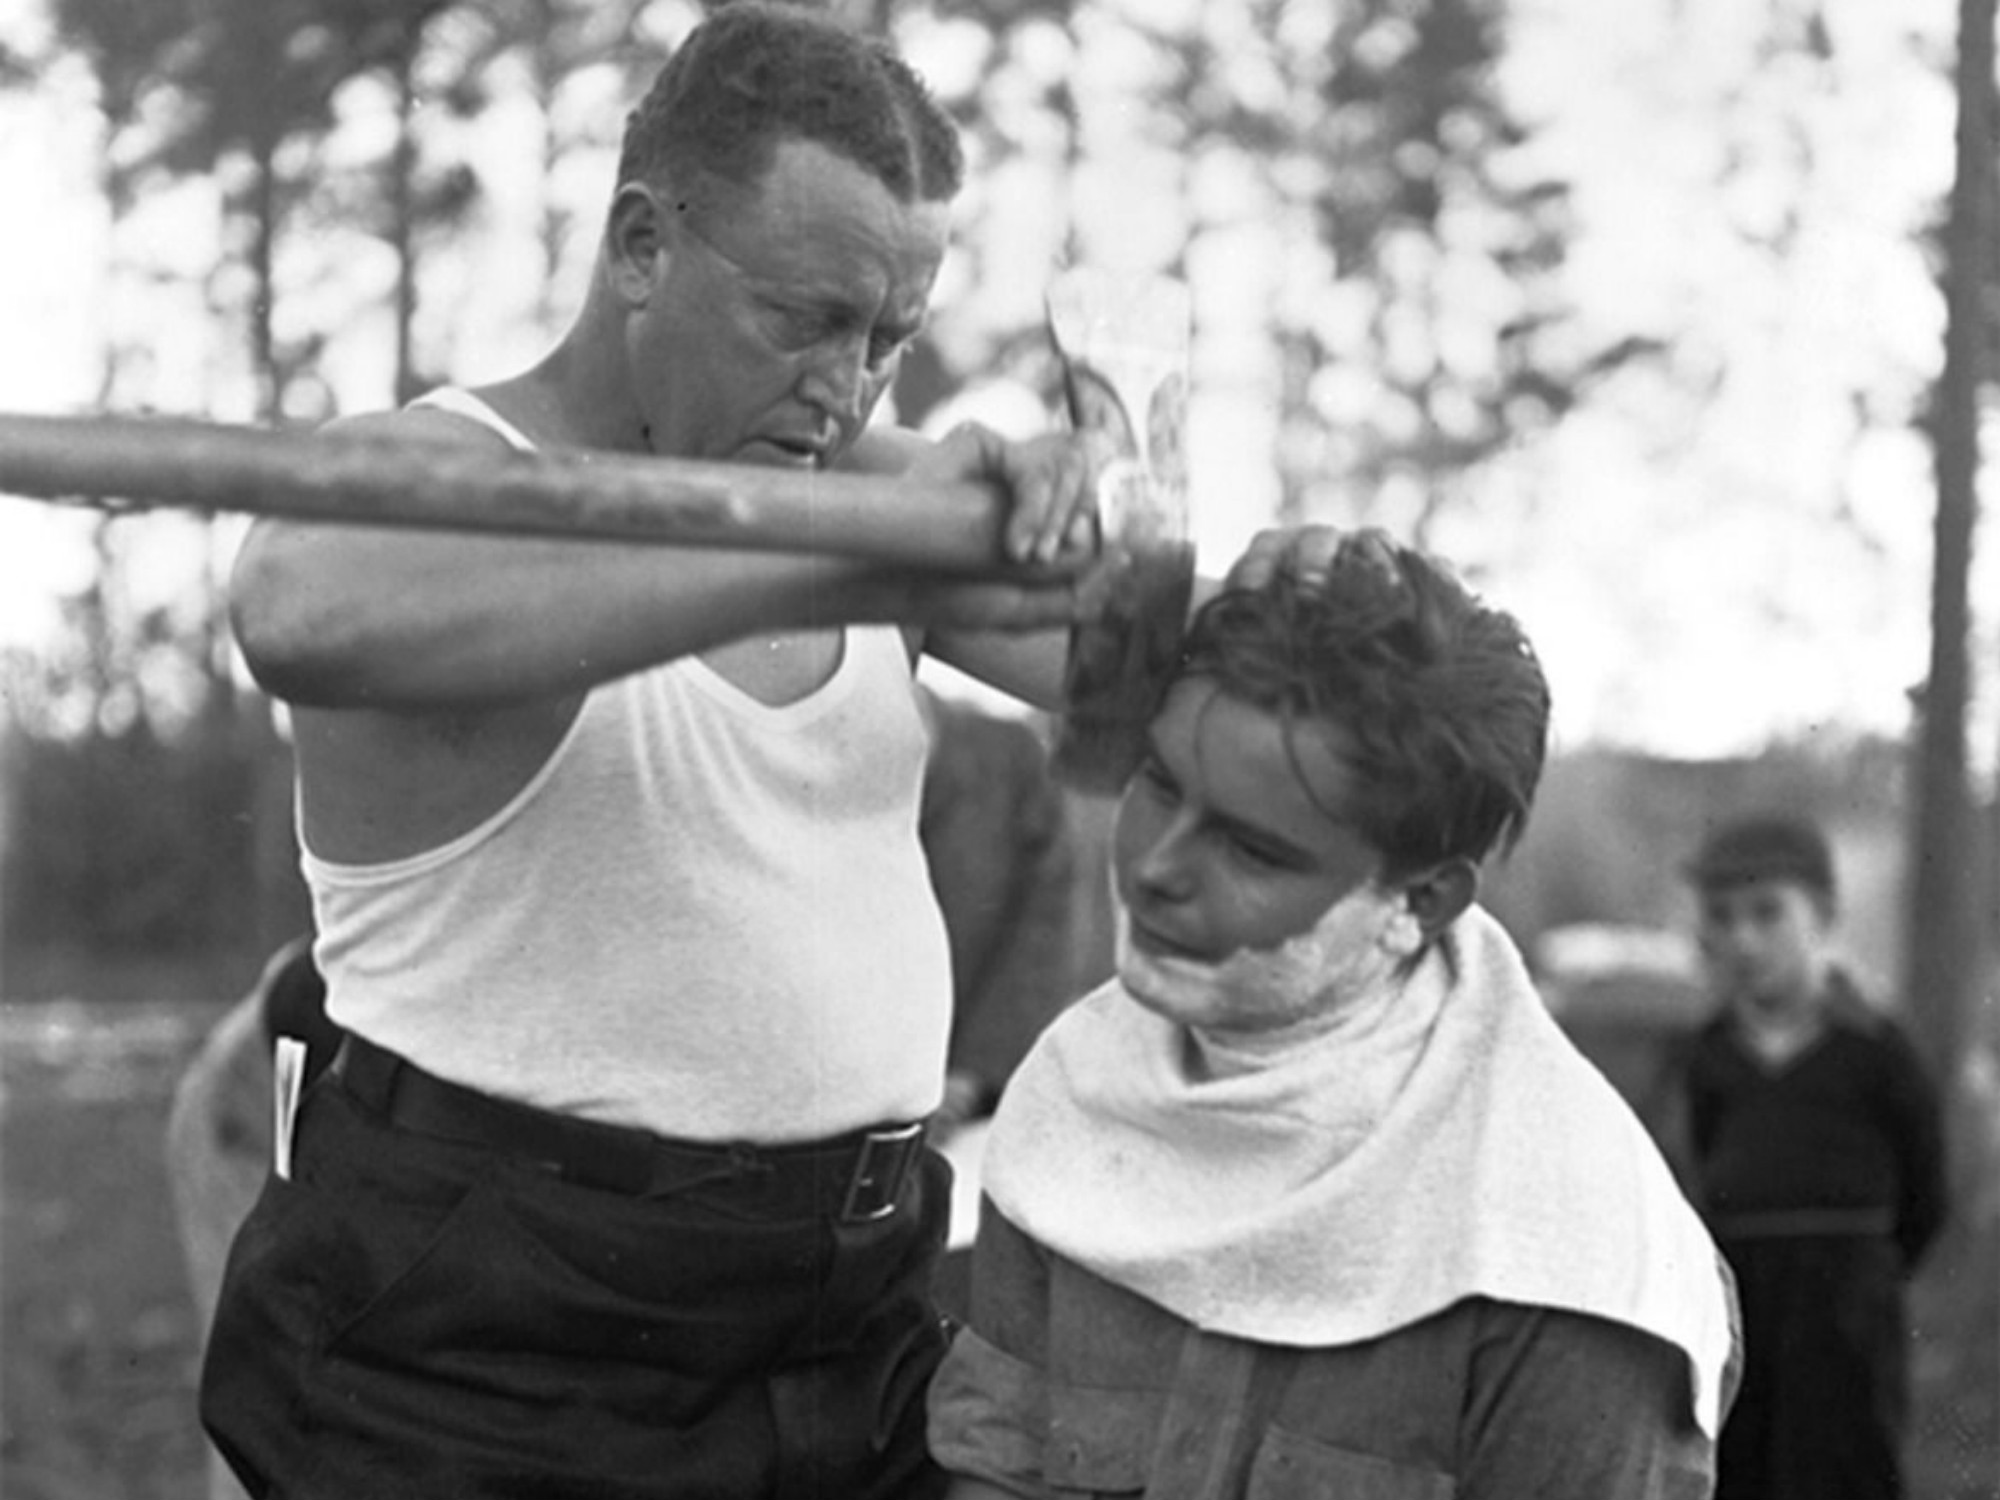 amazing historical photos shaving with an axe image